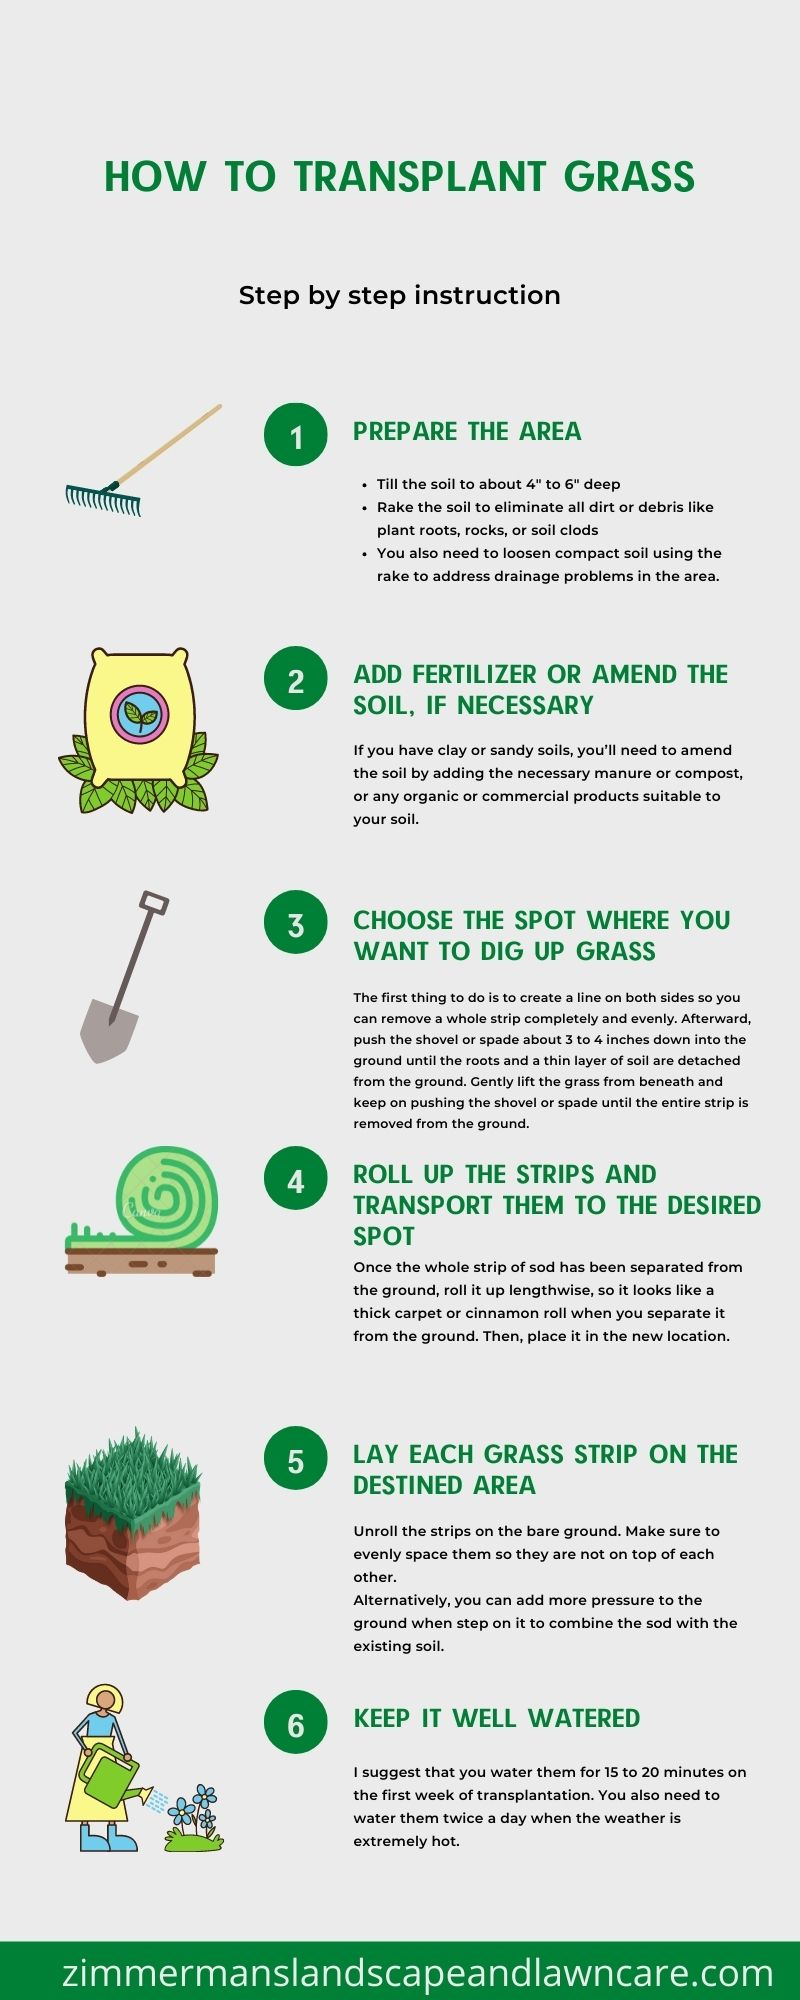 Step by step instructions of transplanting grass